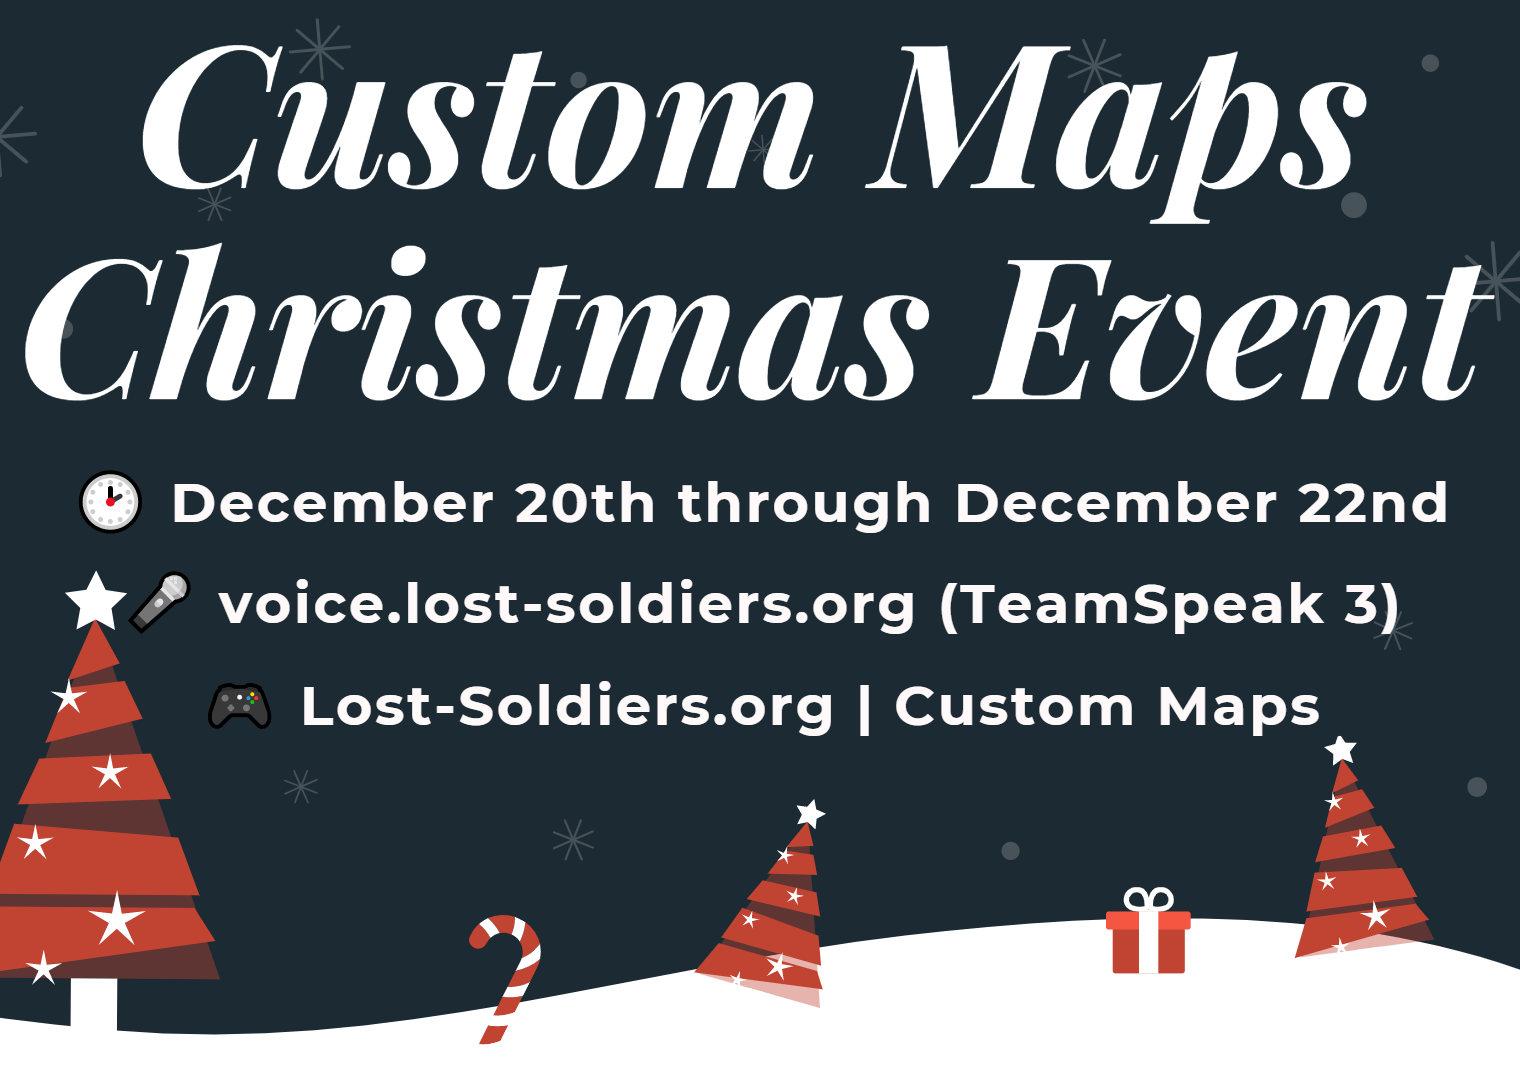 https://lost-soldiers.org/images/news-pics/Custom-Maps-Christmas-Event-2019-min.png